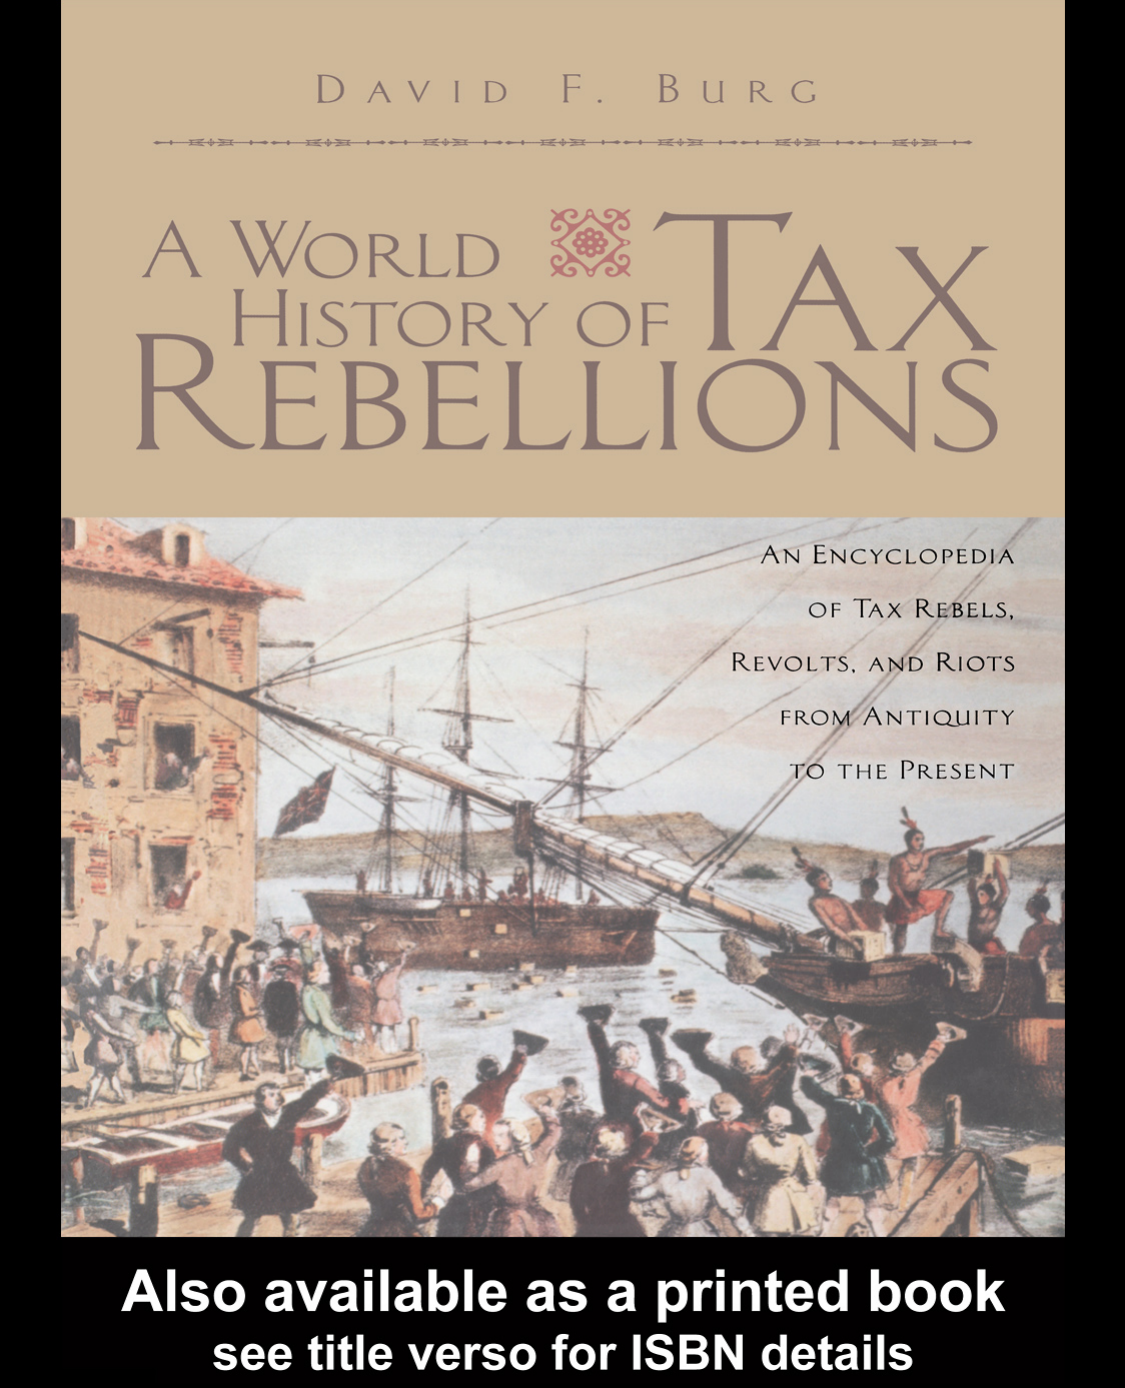 David f burg a world history of tax rebellions an encyclopedia david f burg a world history of tax rebellions an encyclopedia of tax rebels revolts and riots from antiquity to the present 2003 routledge fandeluxe Gallery